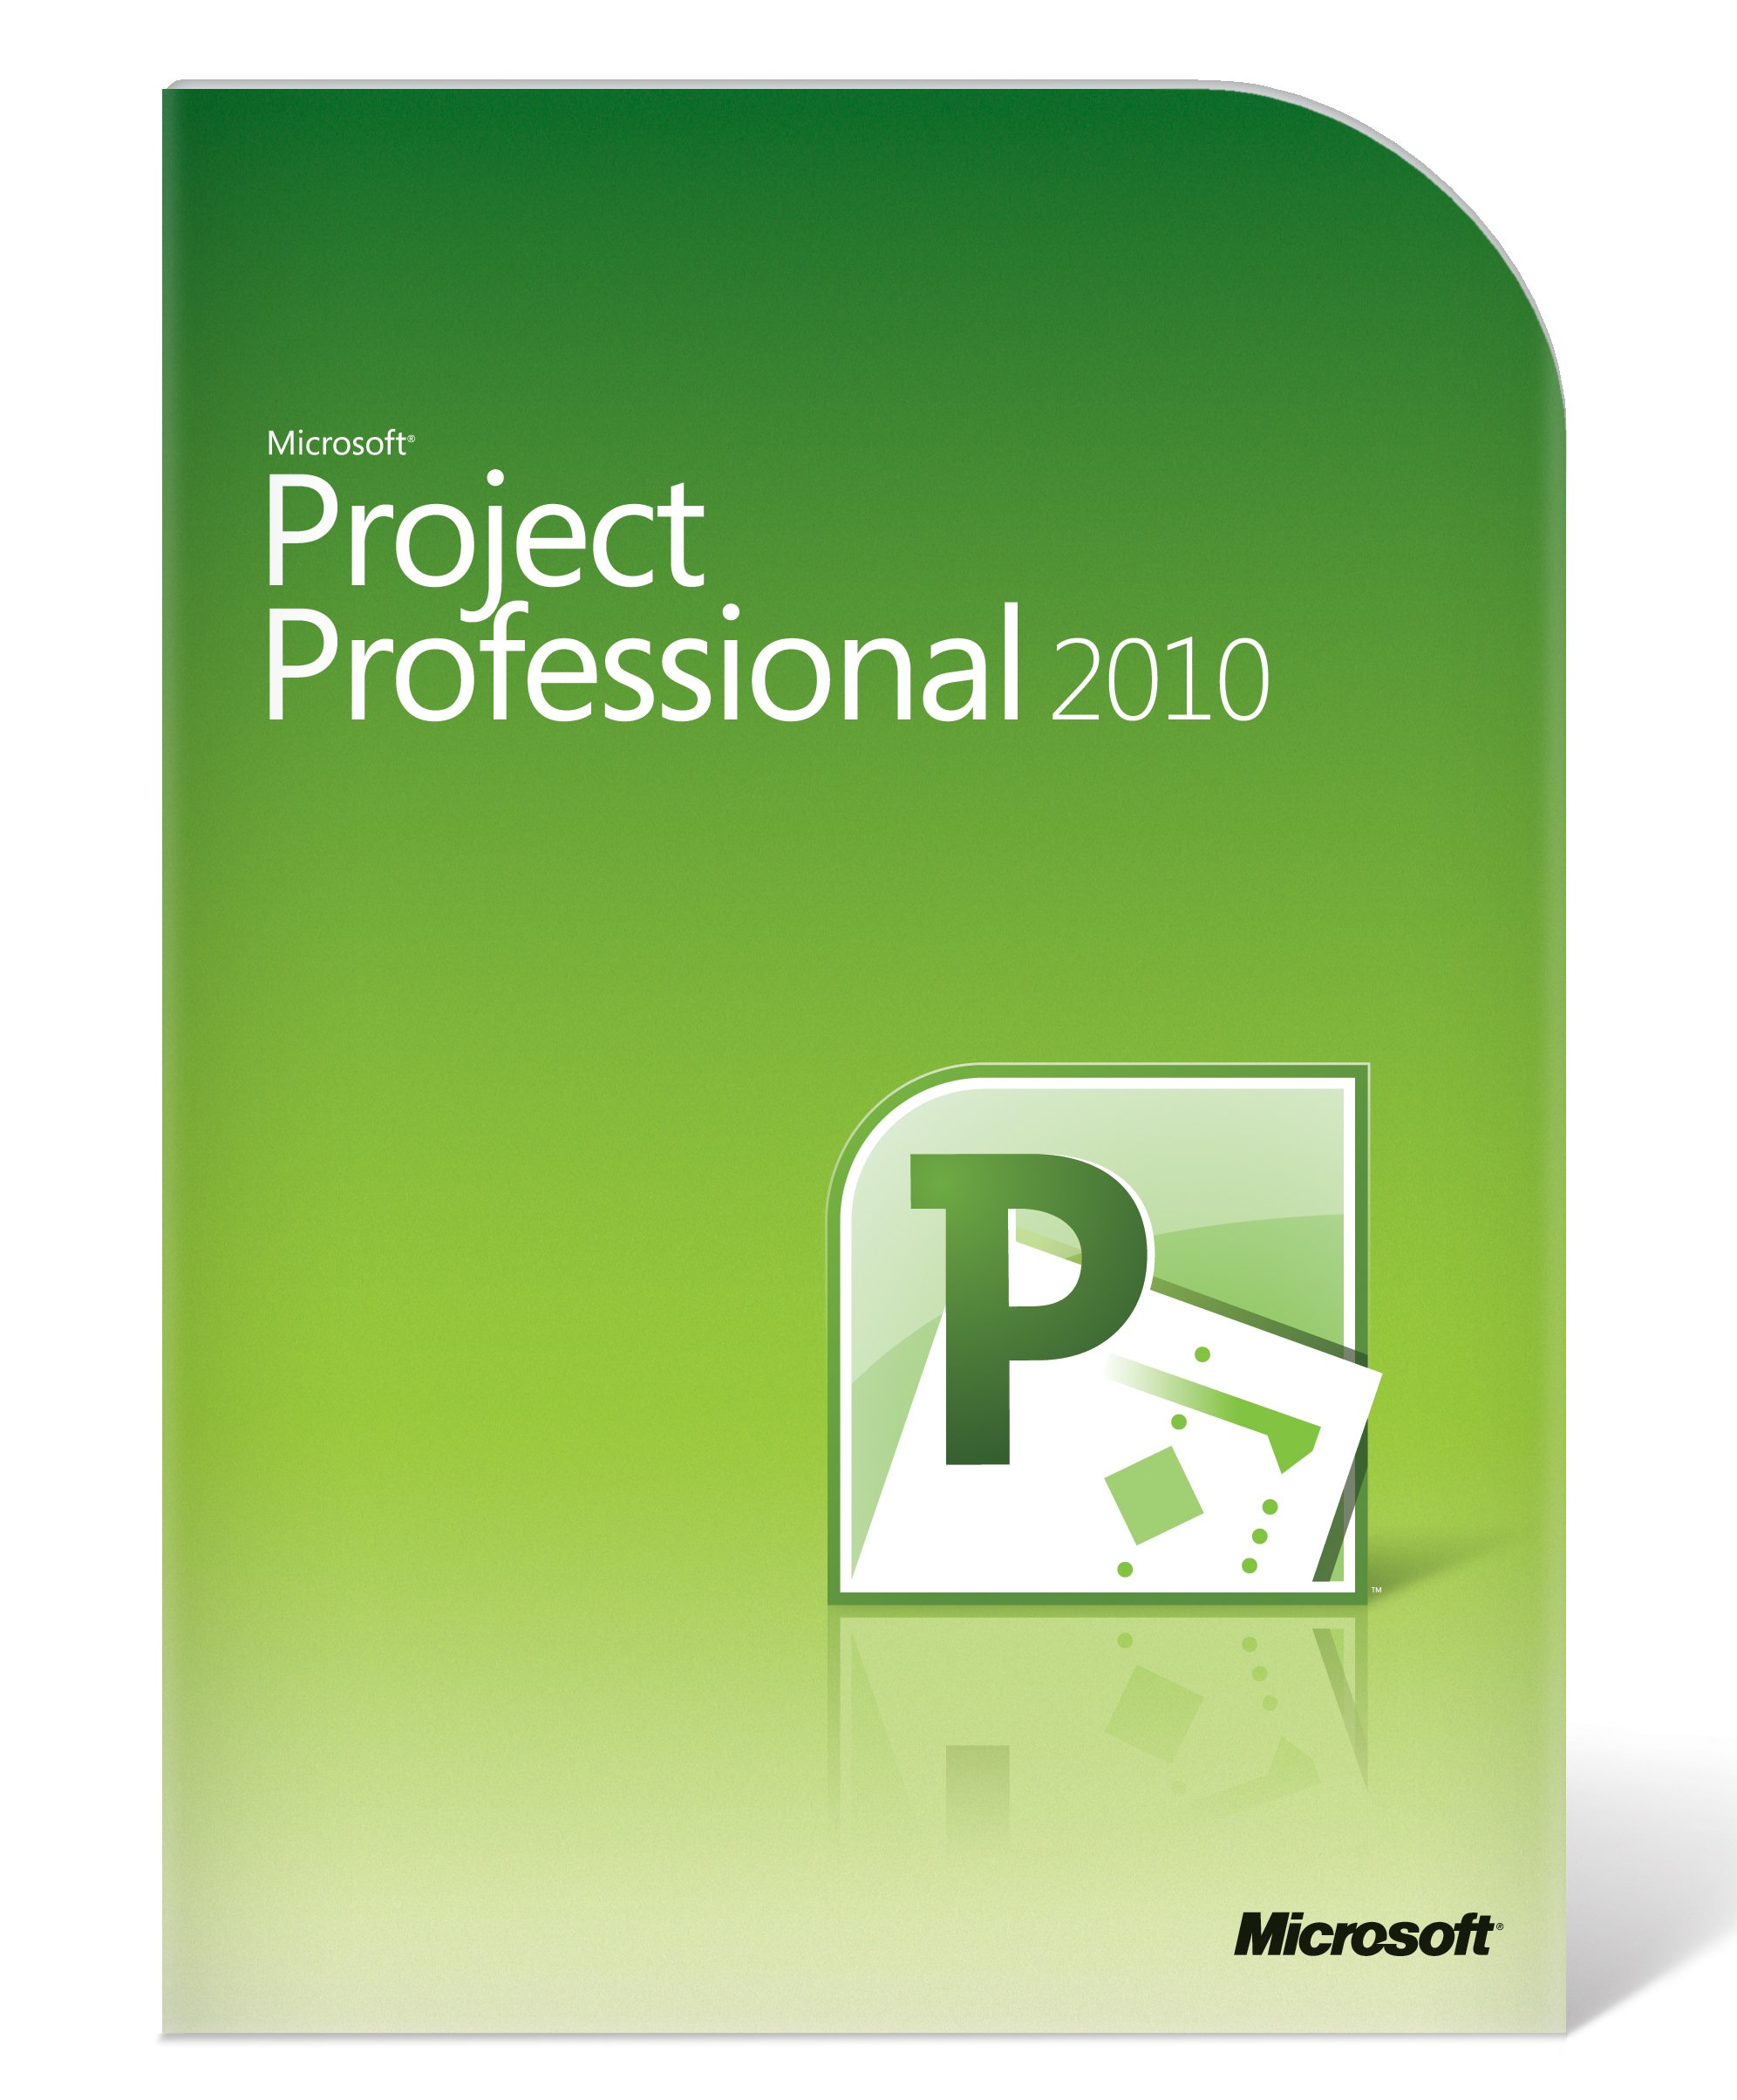 Microsoft Project Professional 2010 [Old Version] by Microsoft